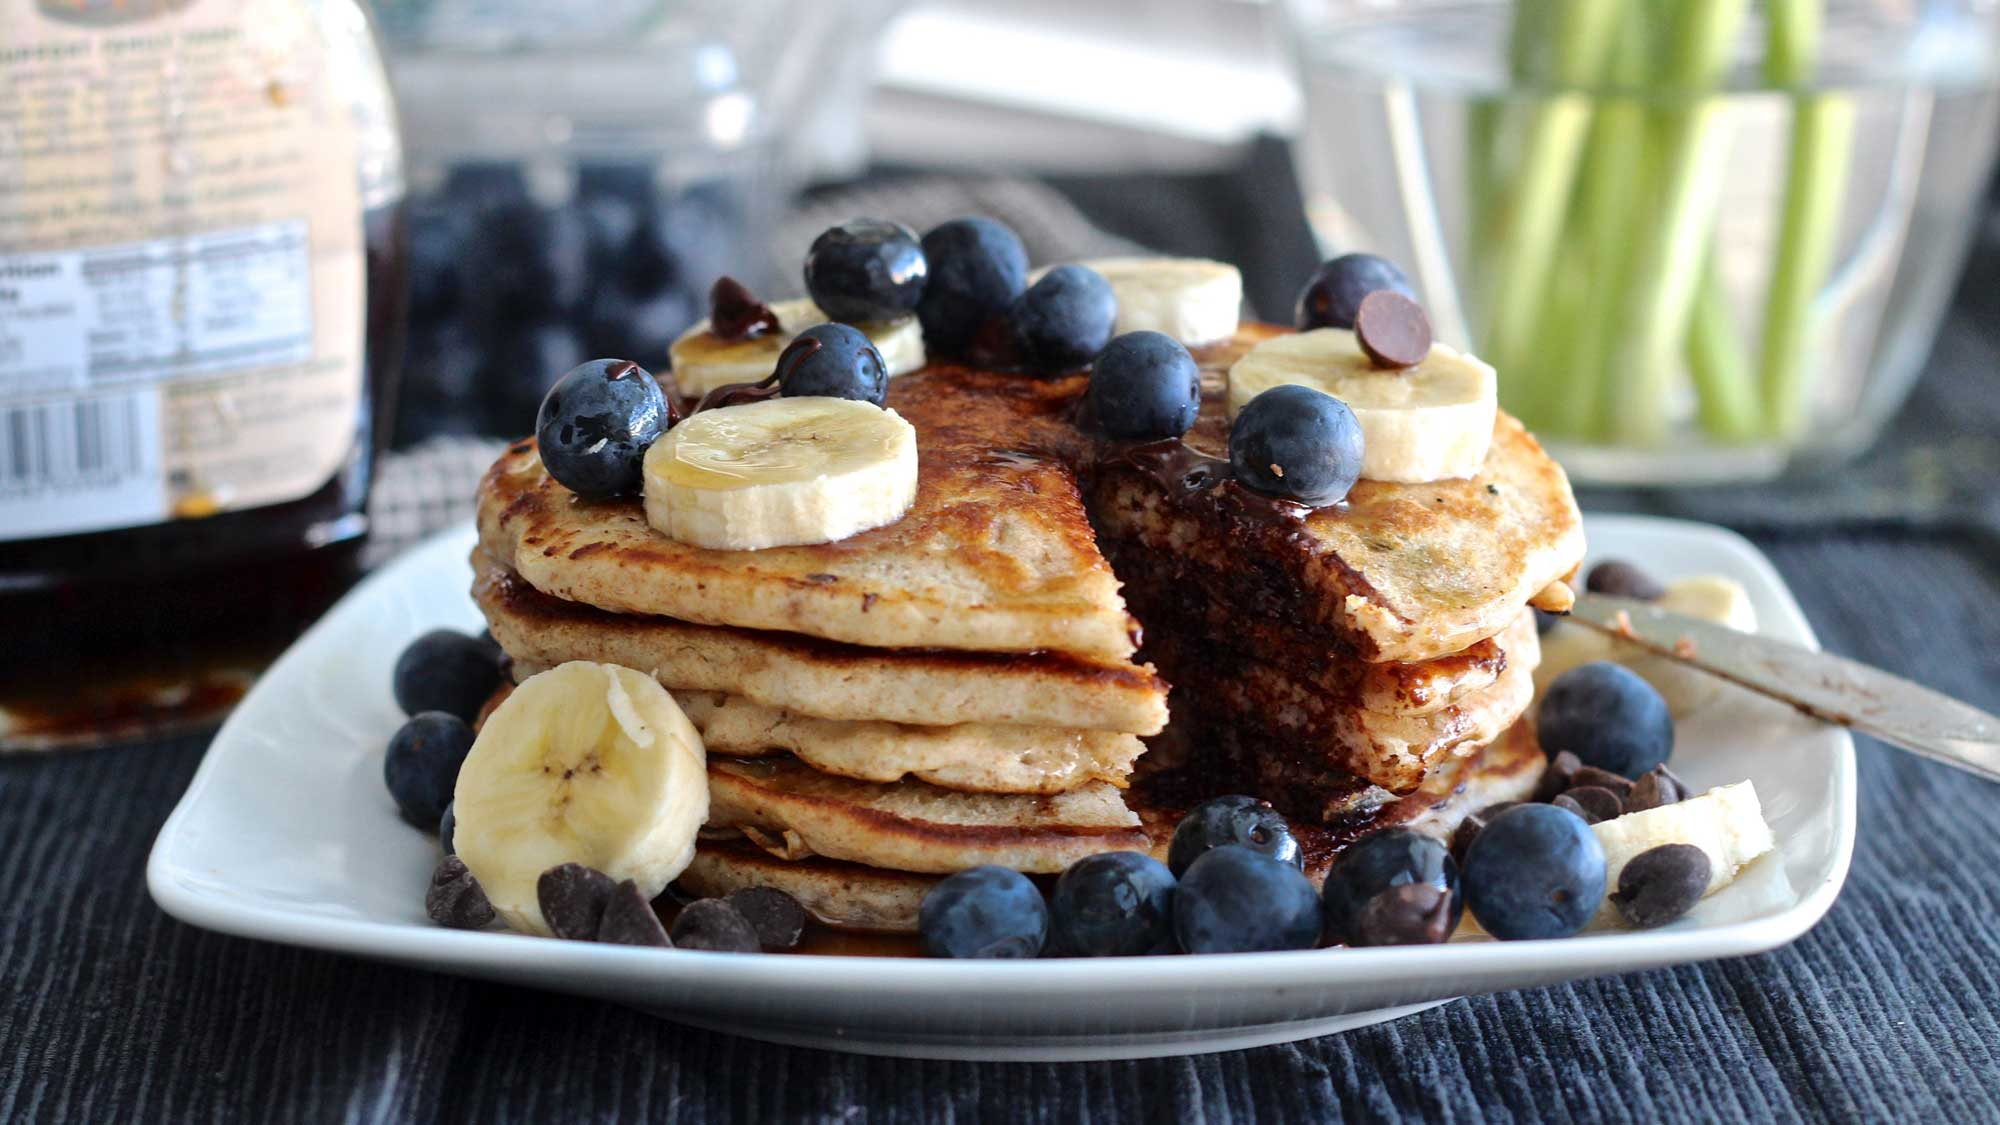 Homemade-Banana-Chocolate-Chip-Pancakes-with-Fresh-Fruit-521150-edited.jpg